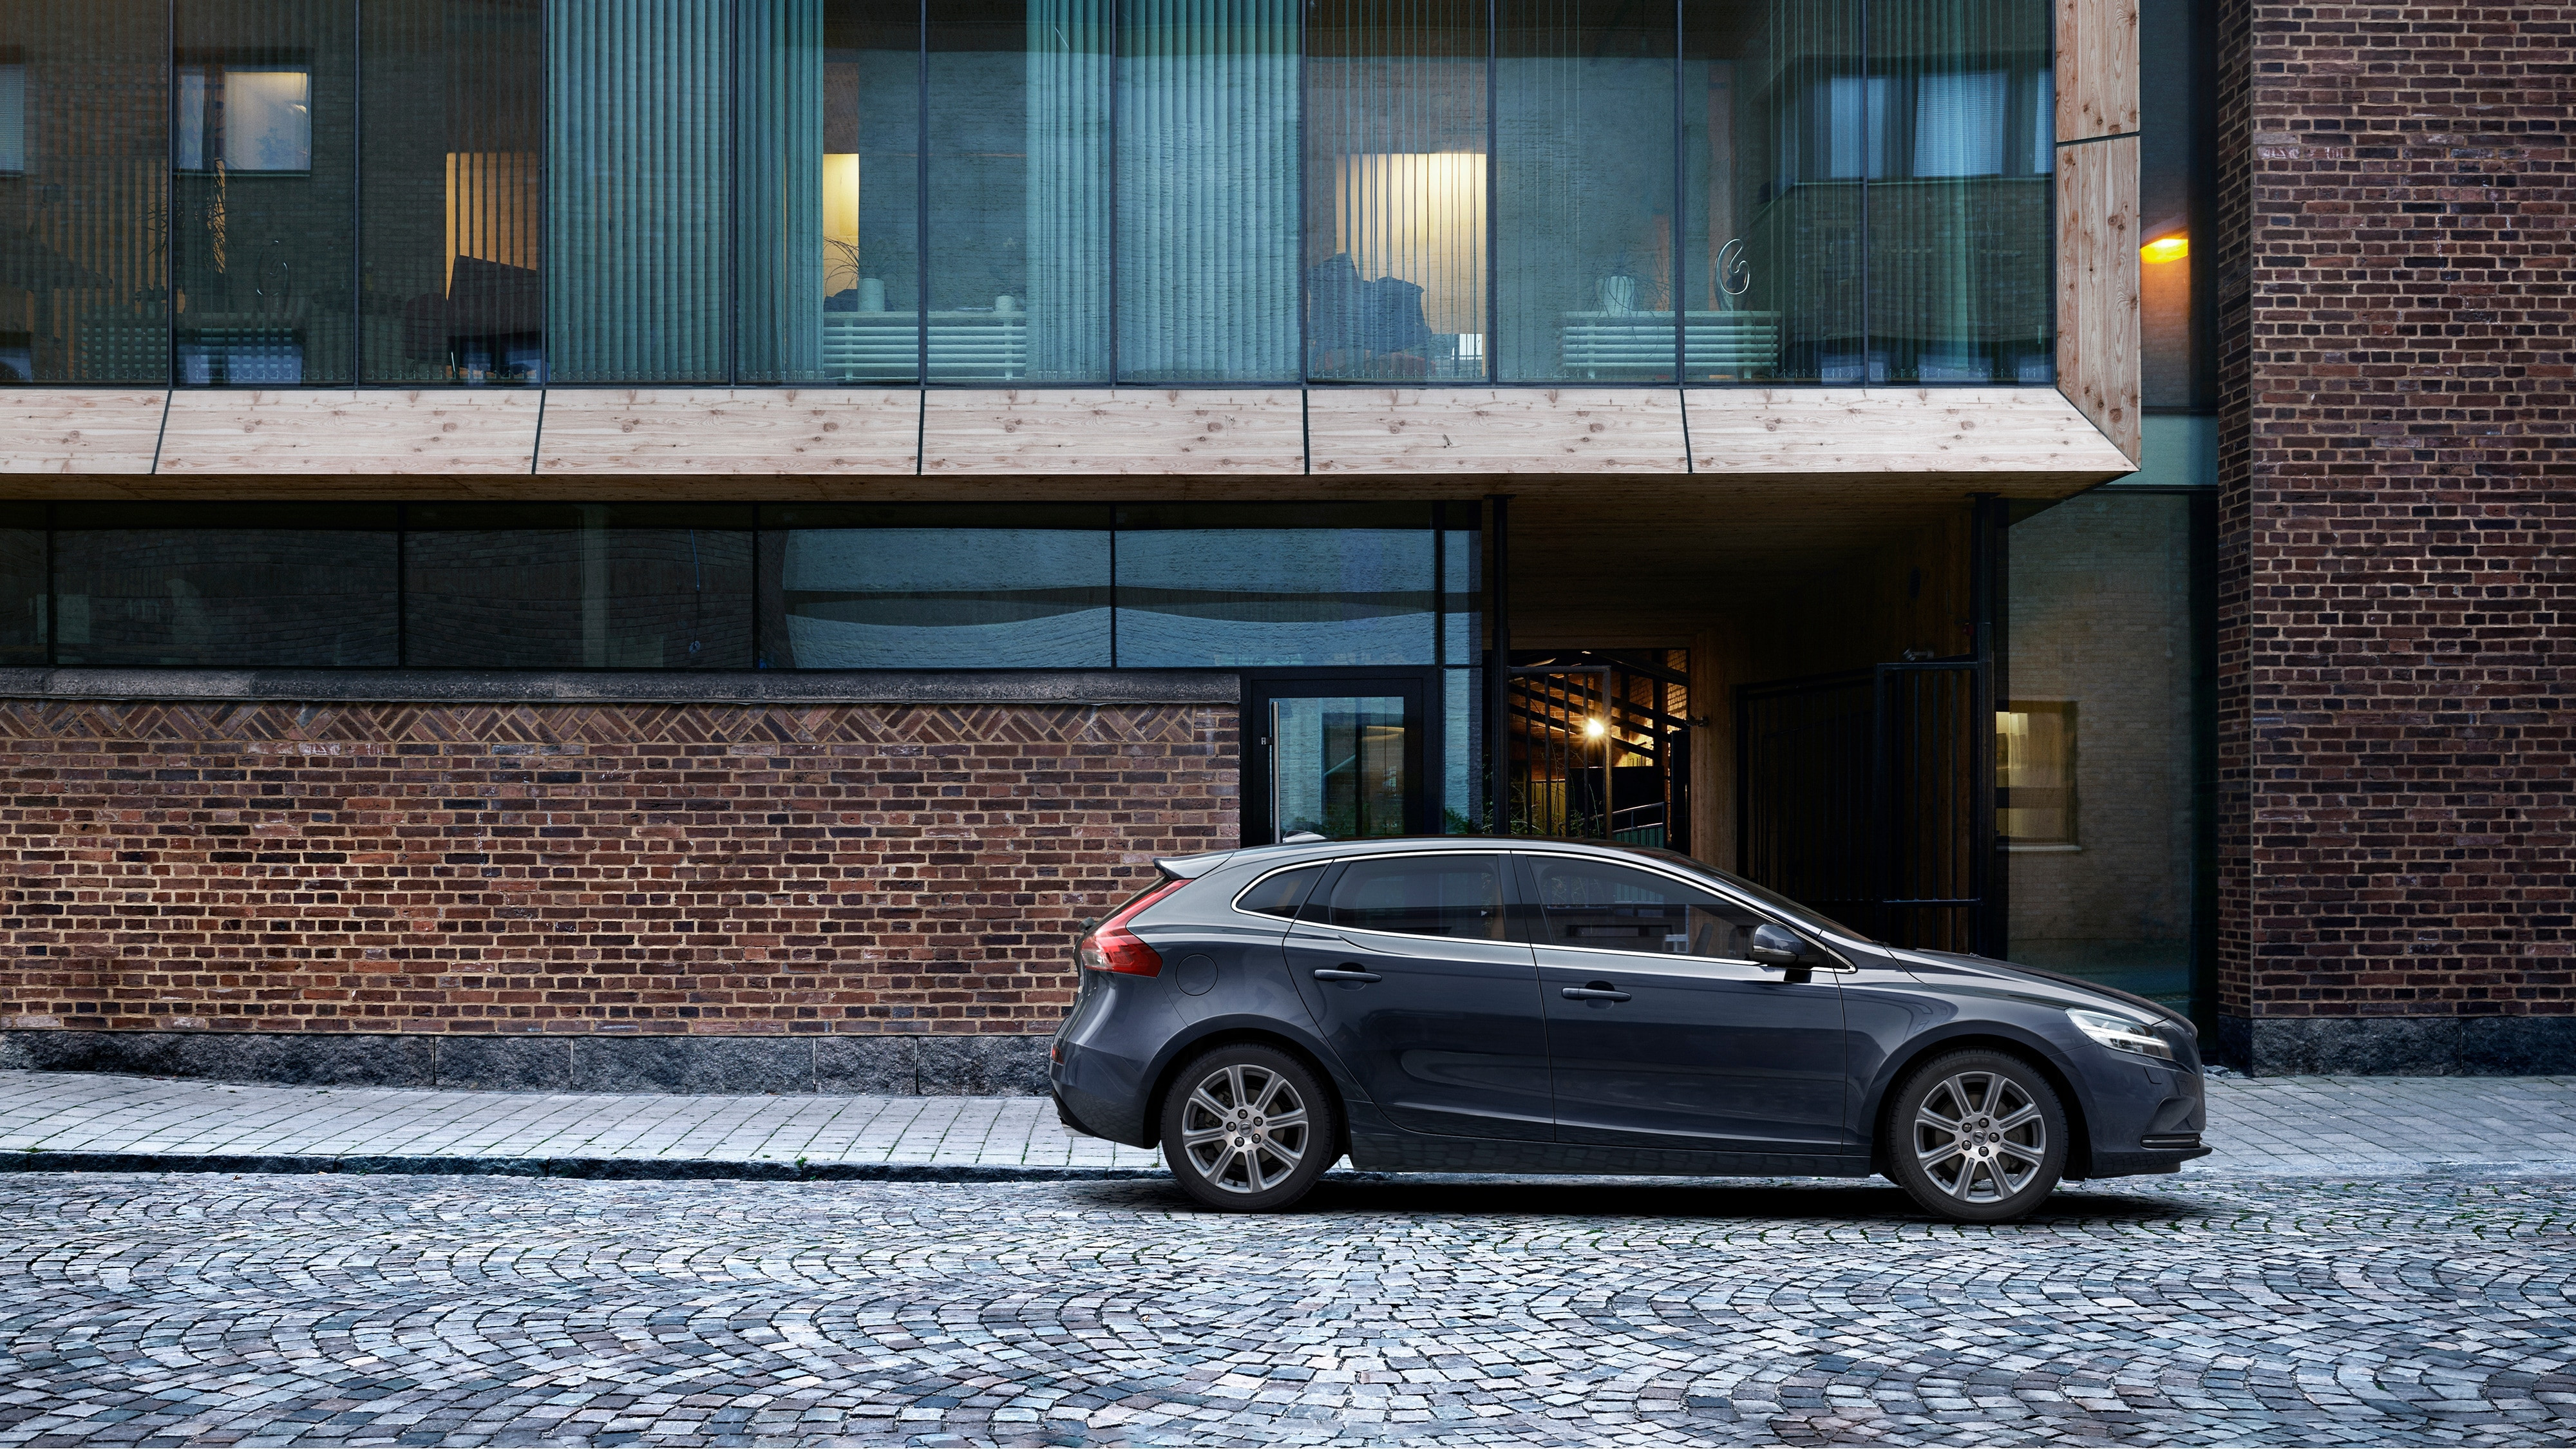 Side view of the Volvo V40 Inscription parked outside a modern building on a brick driveway